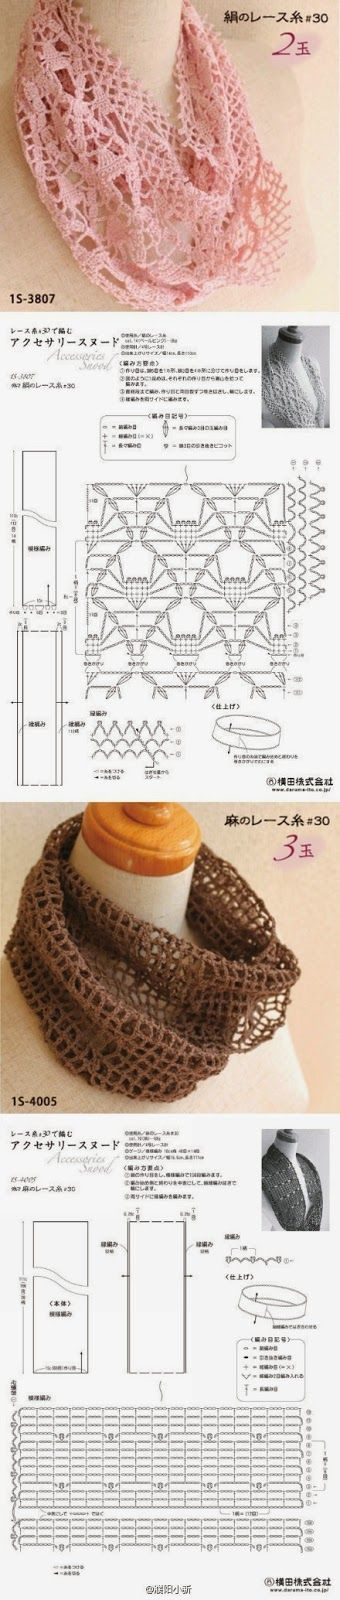 crochet patterns - jewelry, scarves, clothes, shoes and headbands ...